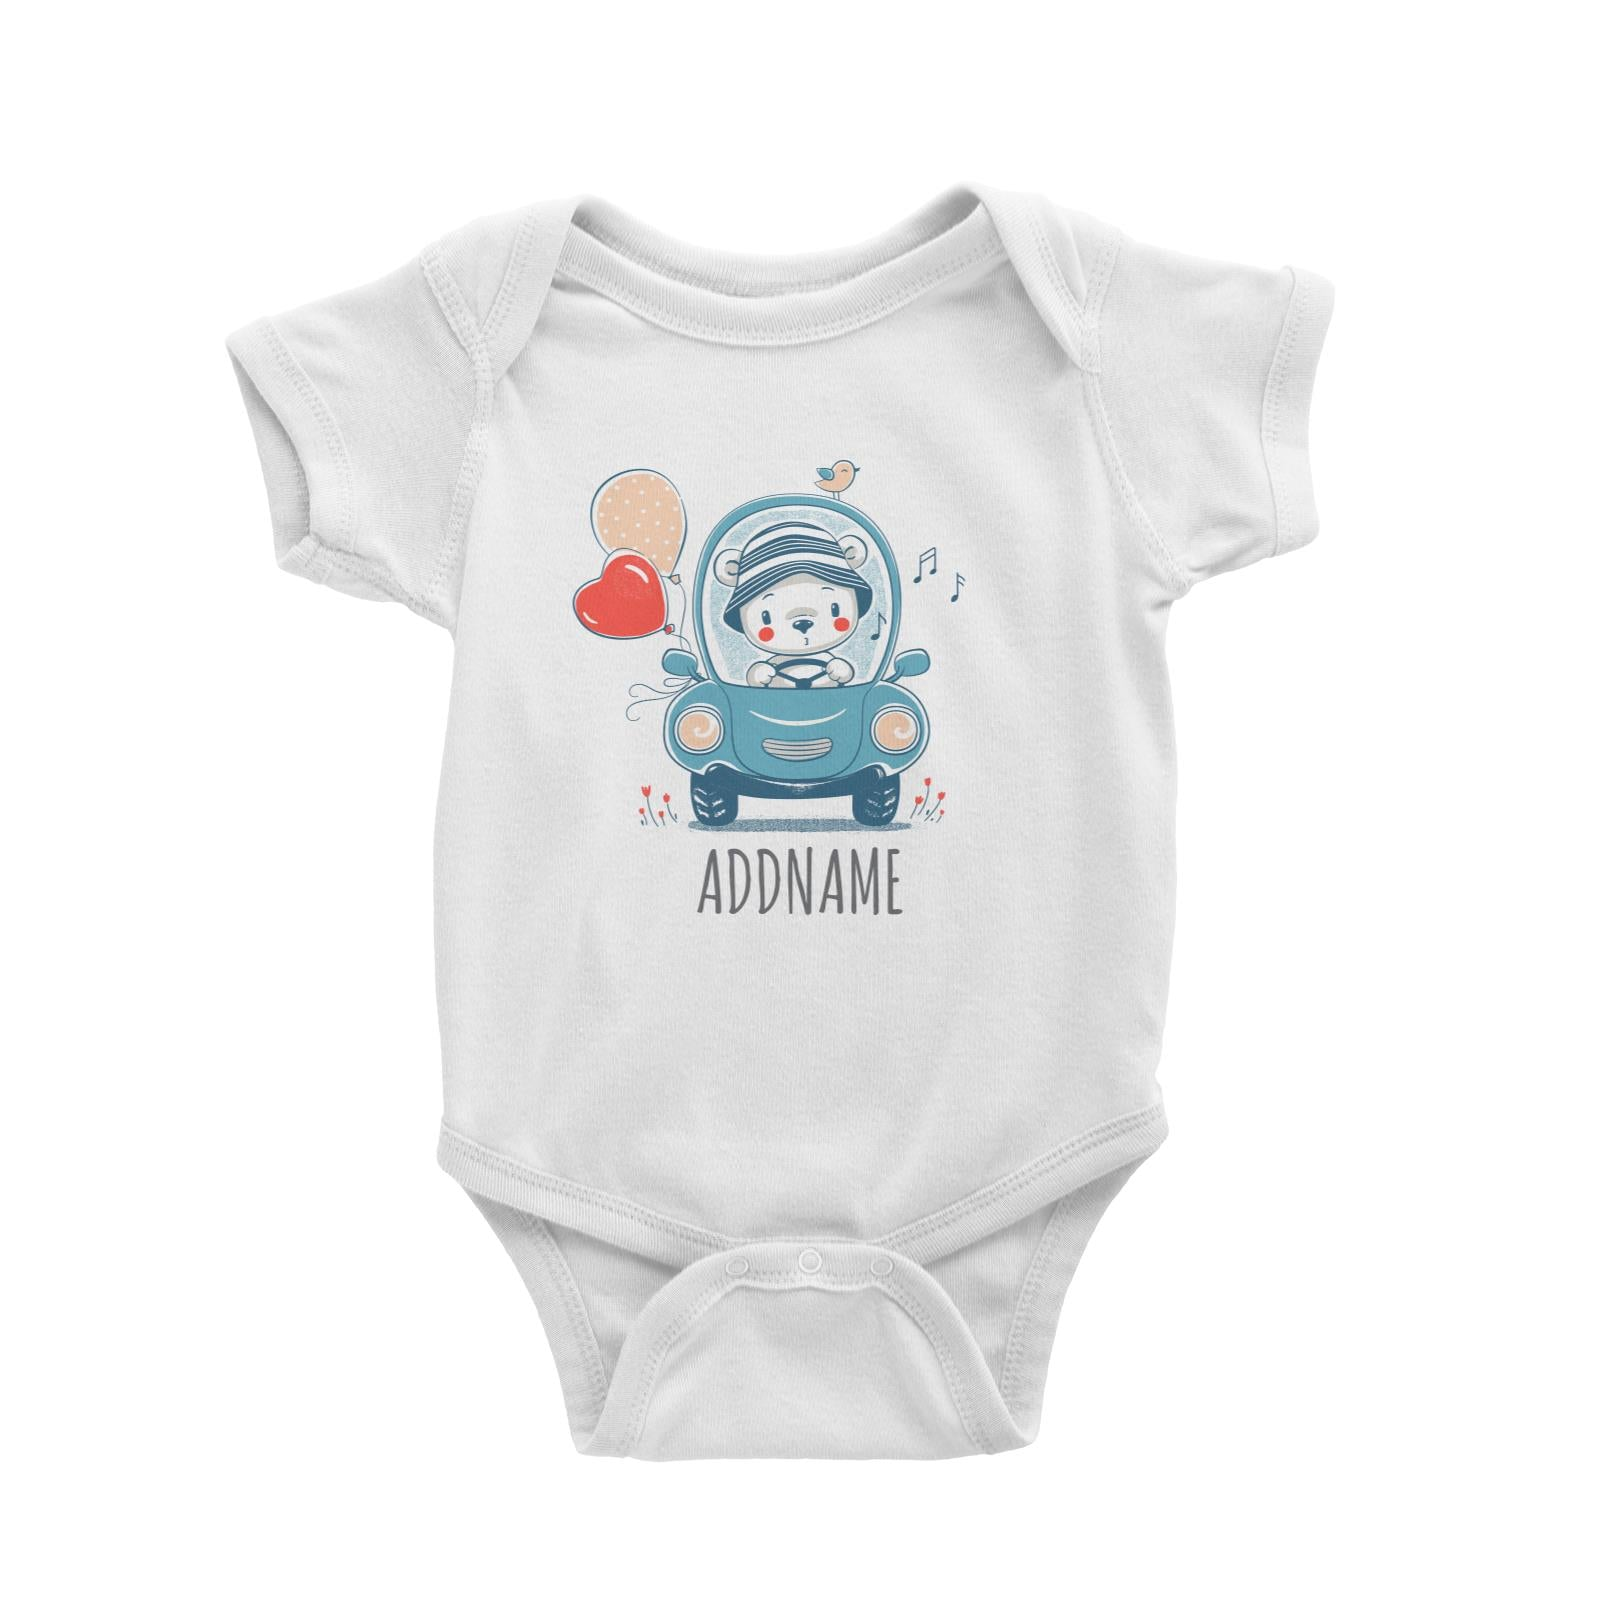 Bear Riding Car with Balloons White Baby Romper Personalizable Designs Cute Sweet Animal Love For Boys HG